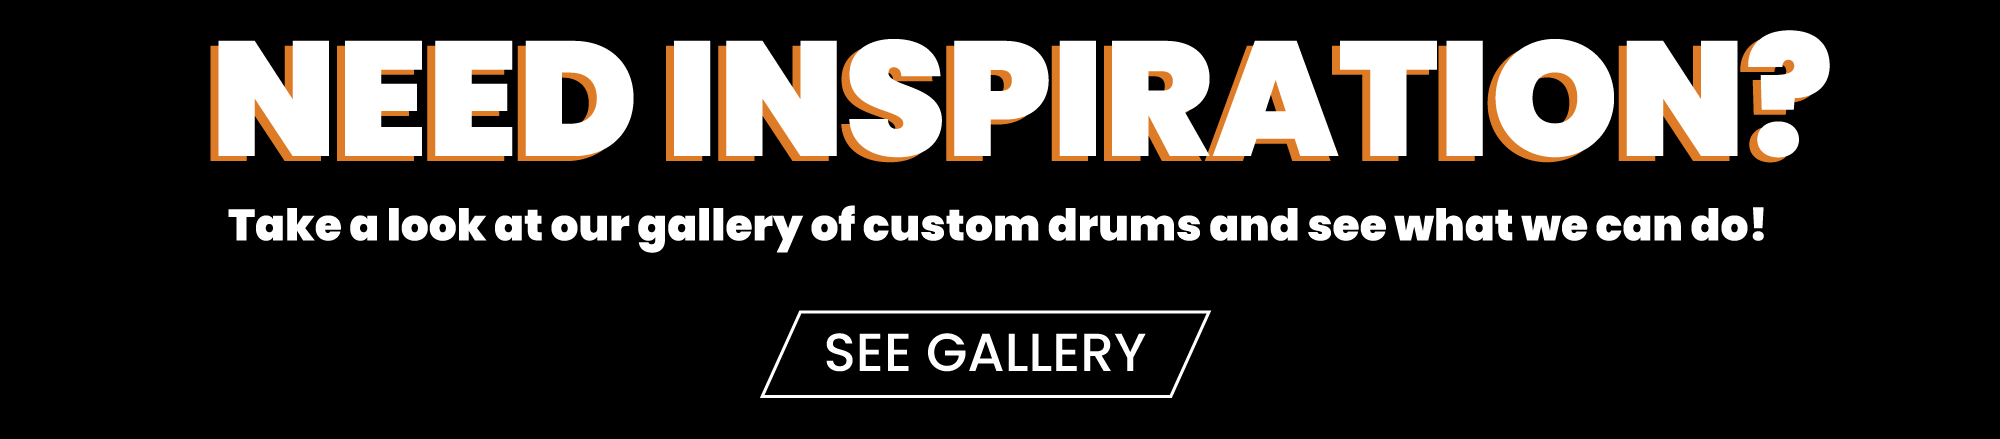 Need Inspiration? Take a look at our gallery of custom drums and see what we can do! See Gallery